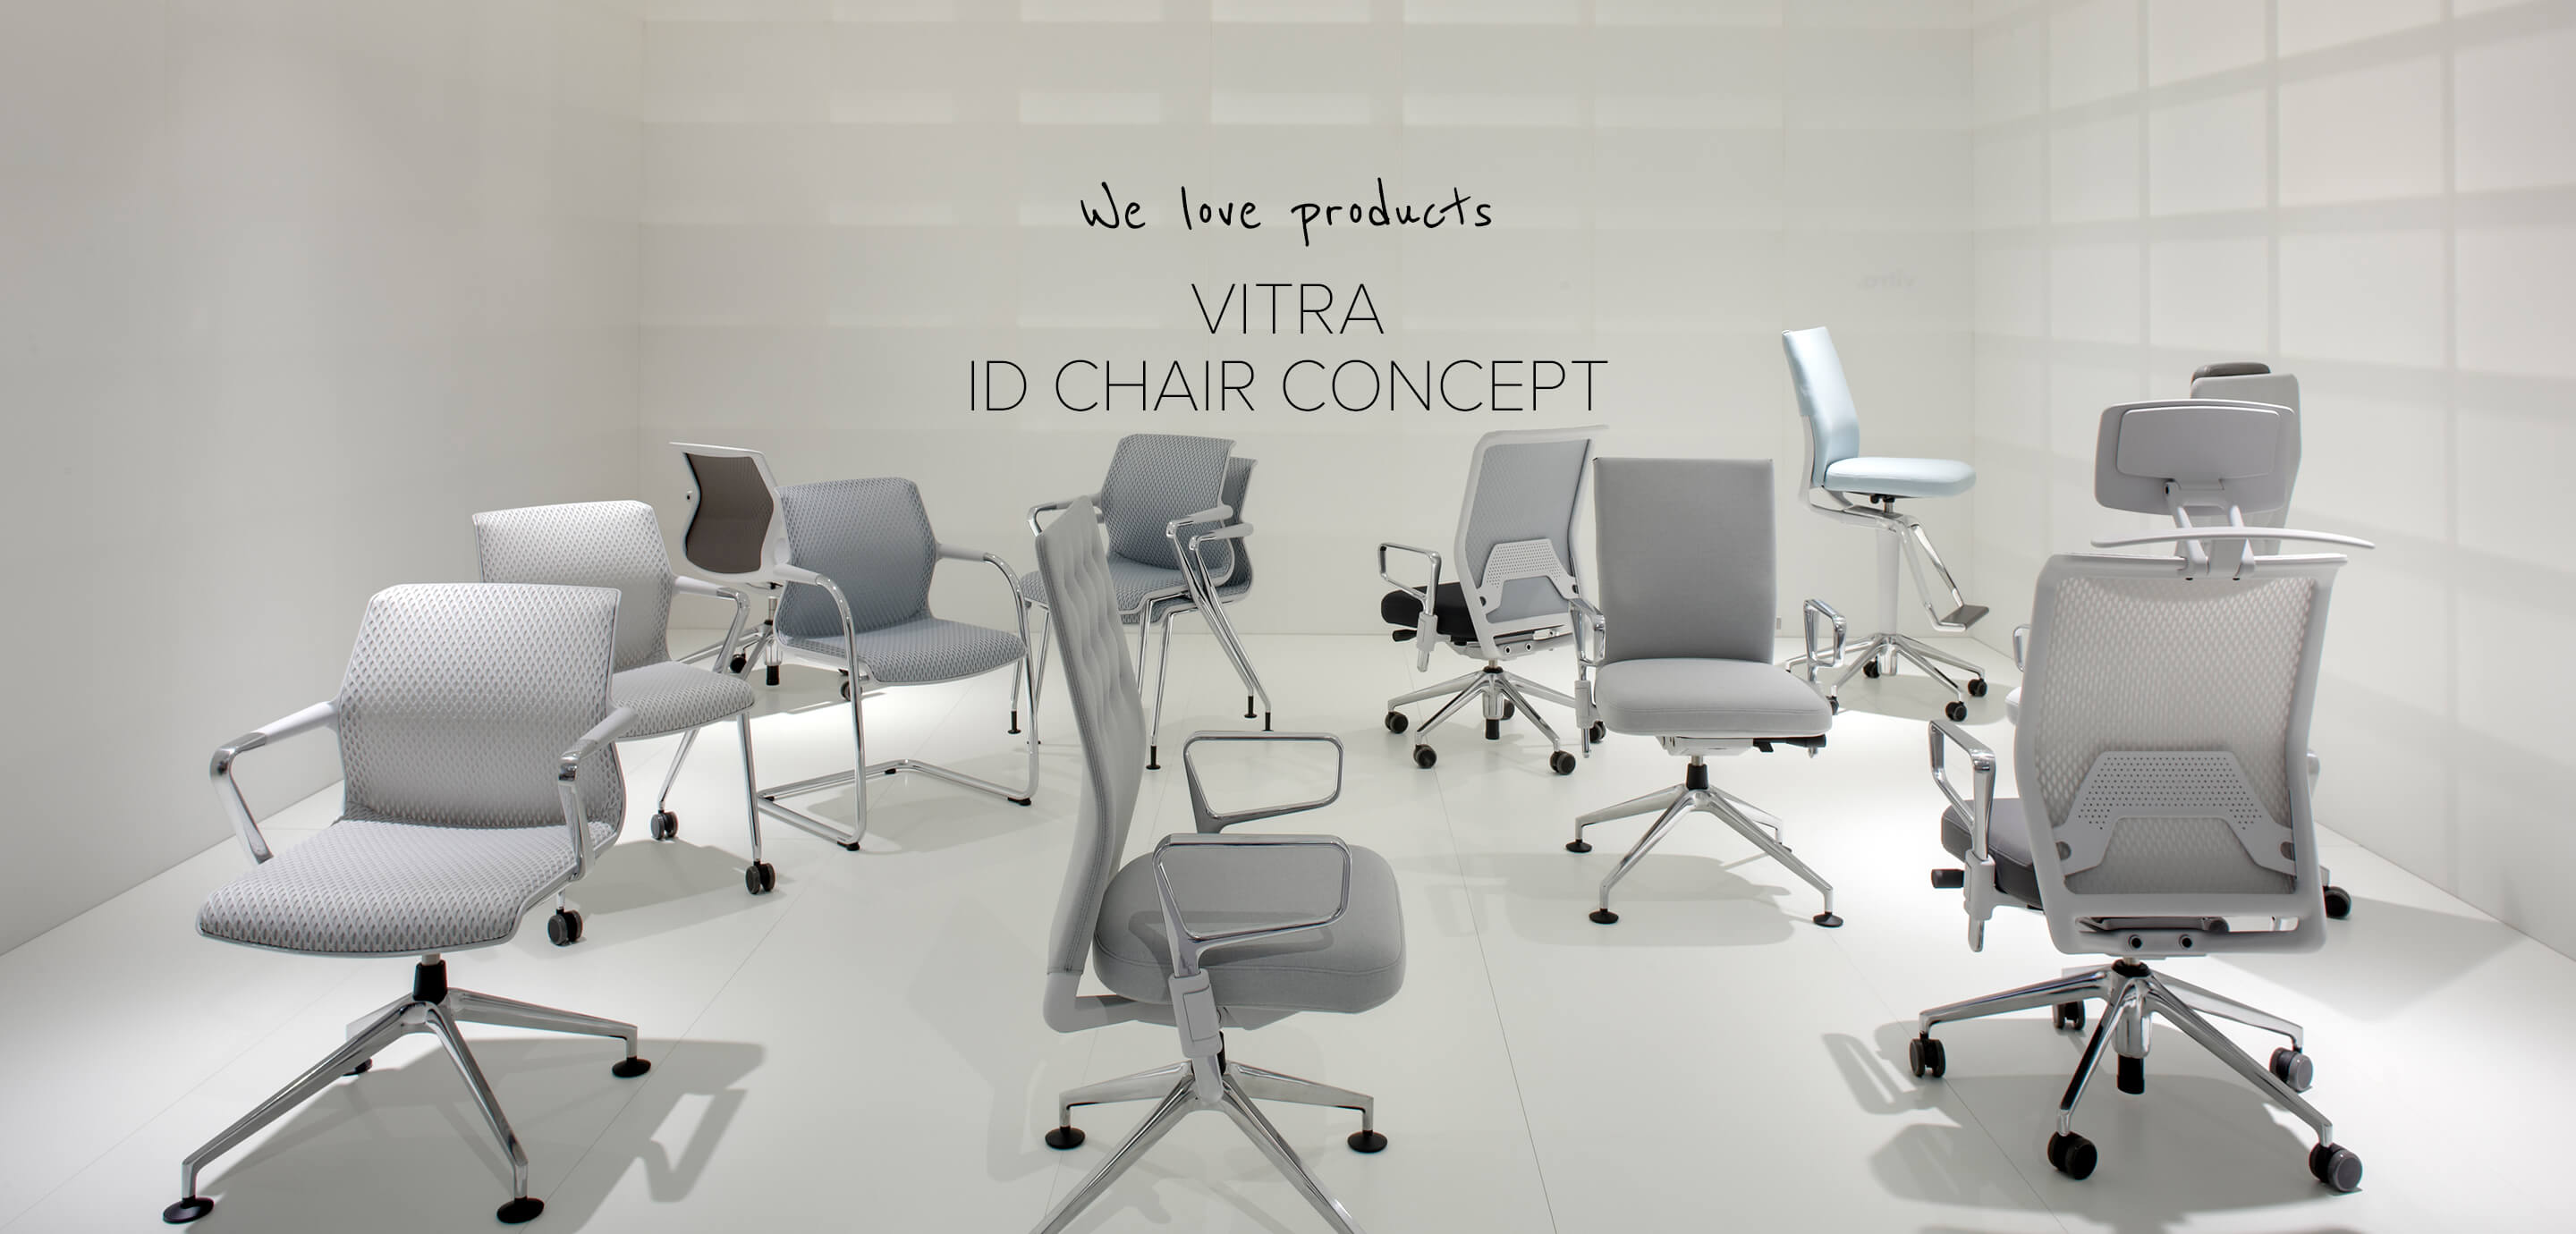 Vitra ID Chair Concept